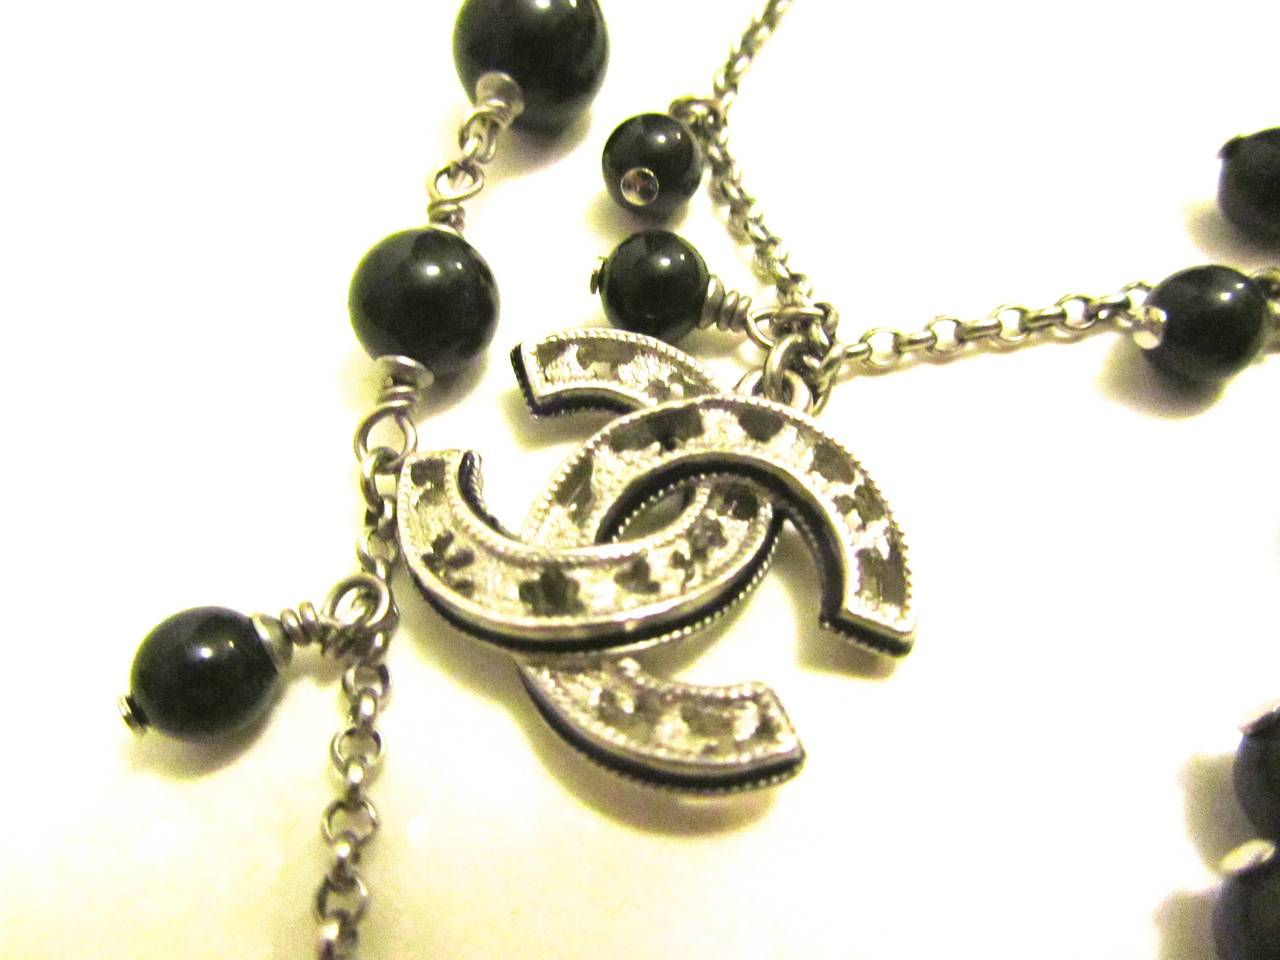 Chanel Necklace - Double Strand Alternating Black Beads - CC Logo 3